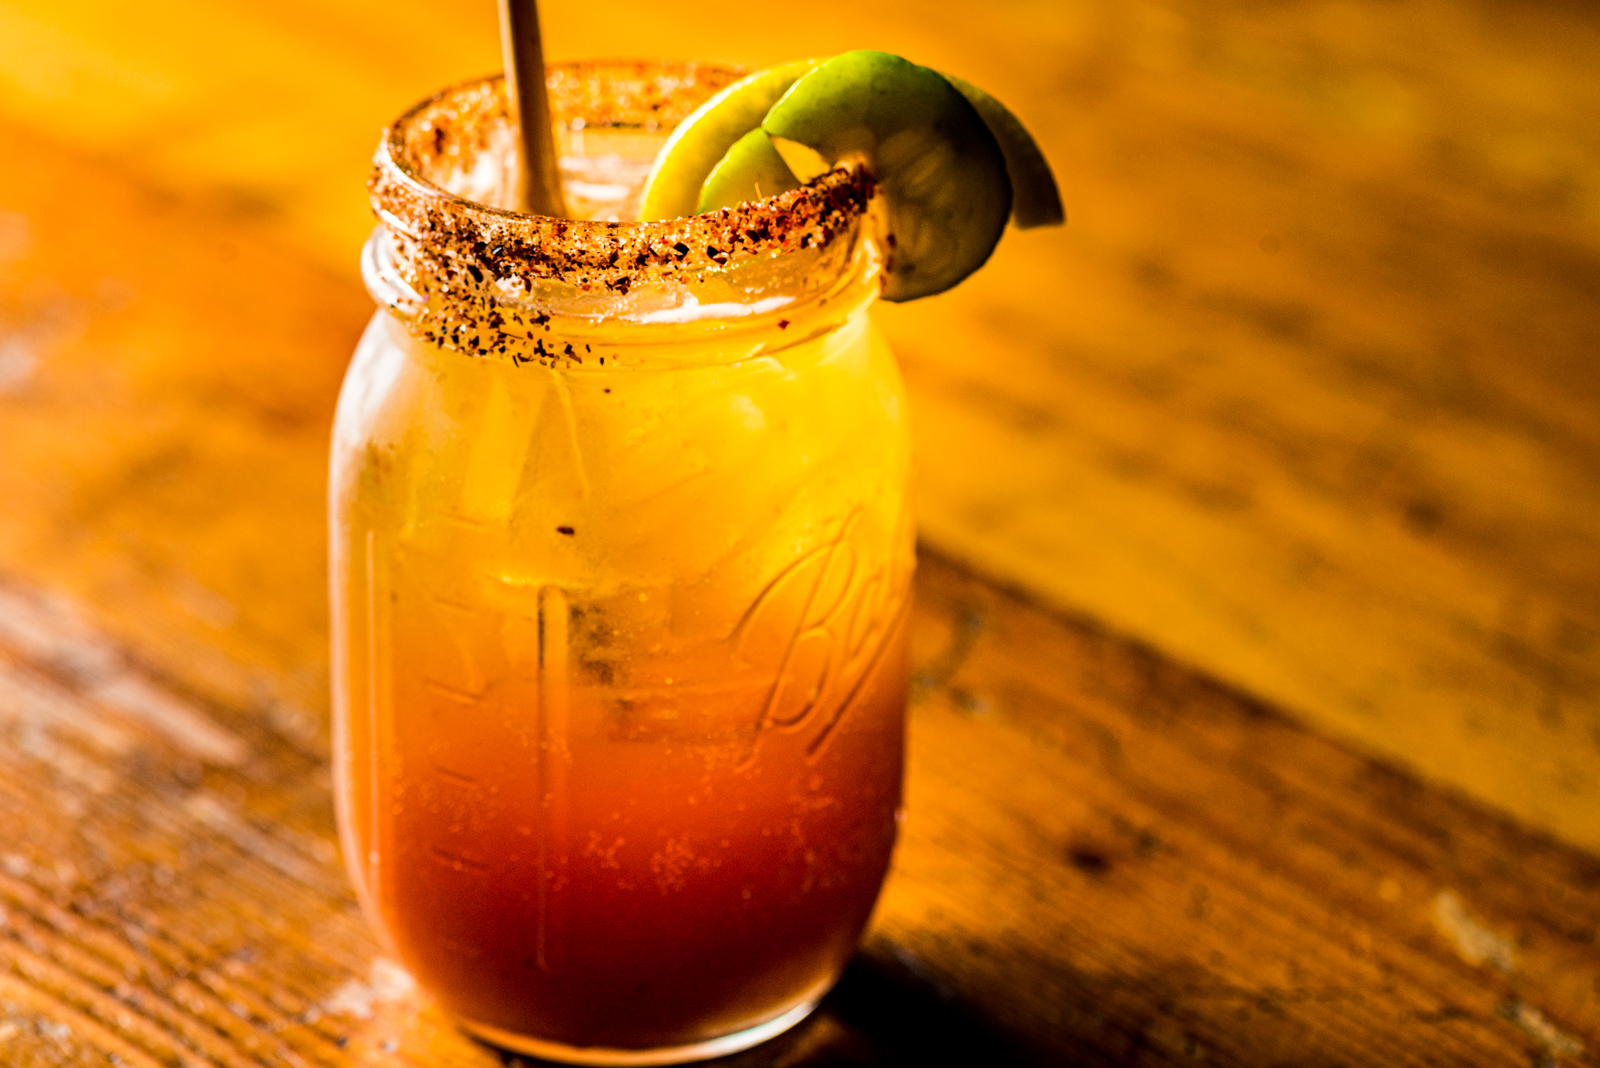 Tin Cactus Brings Flavored Margaritas and Fried Fish Tacos to Belden Place